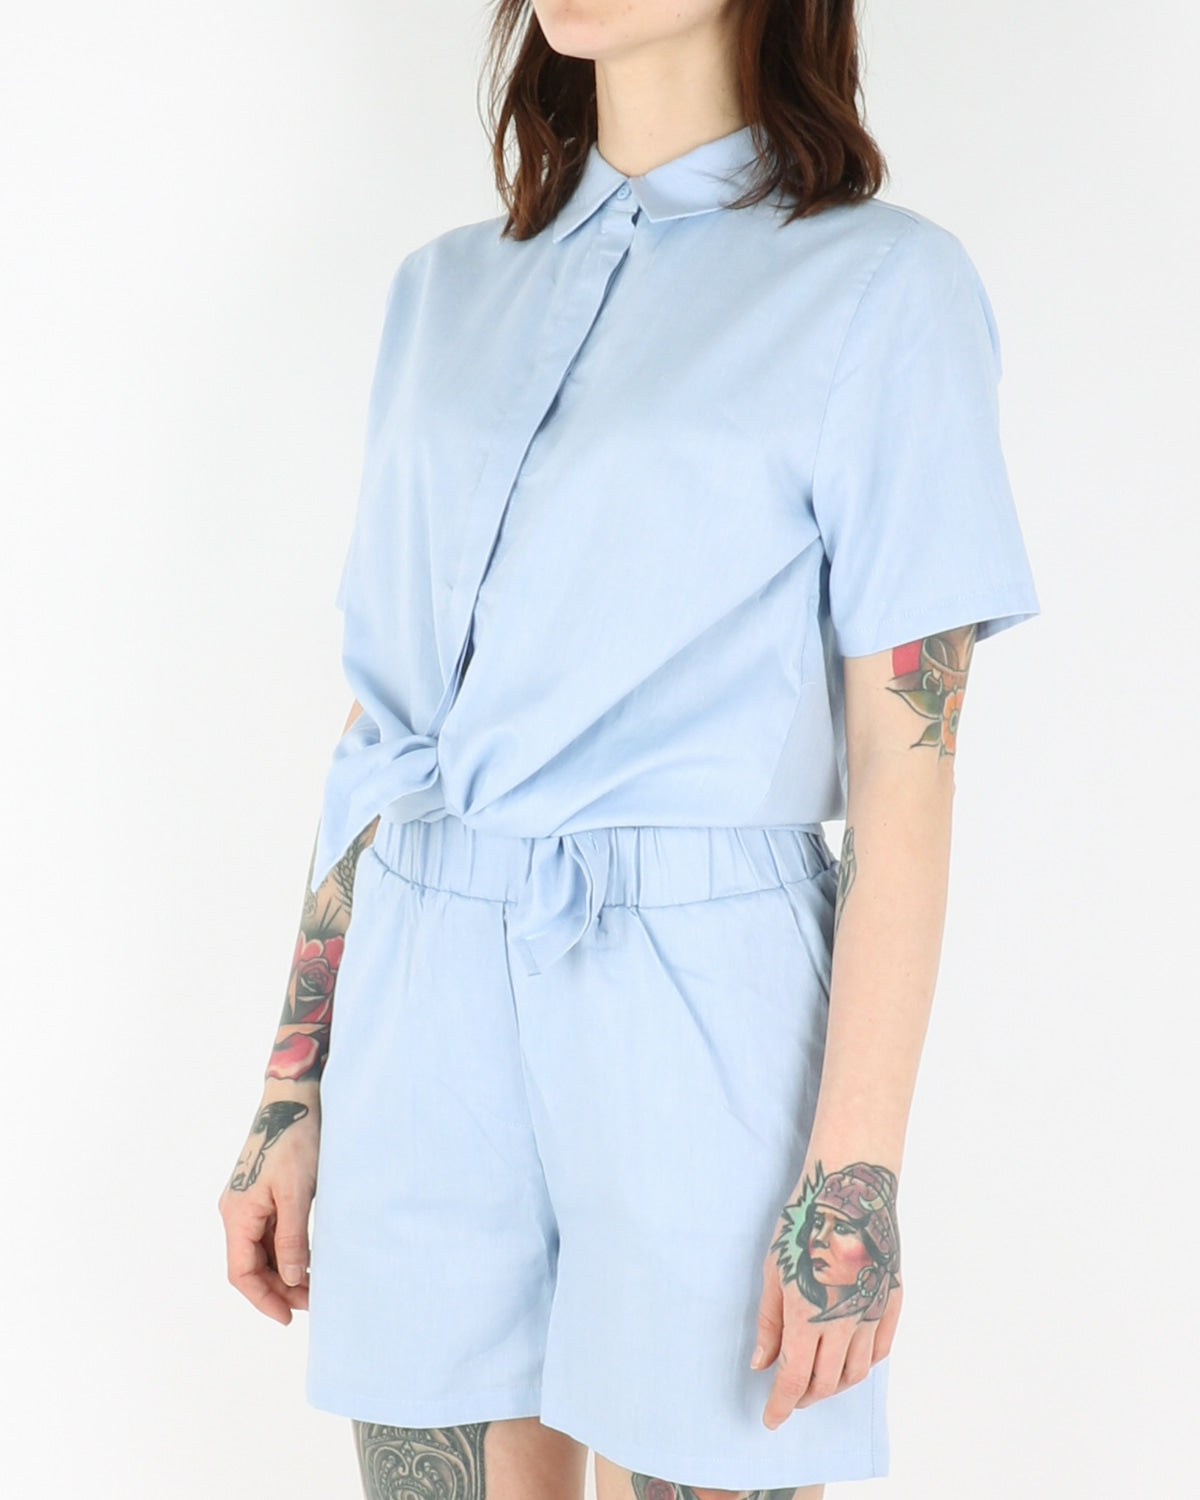 basic apparel_helle shirt_light blue_2_3